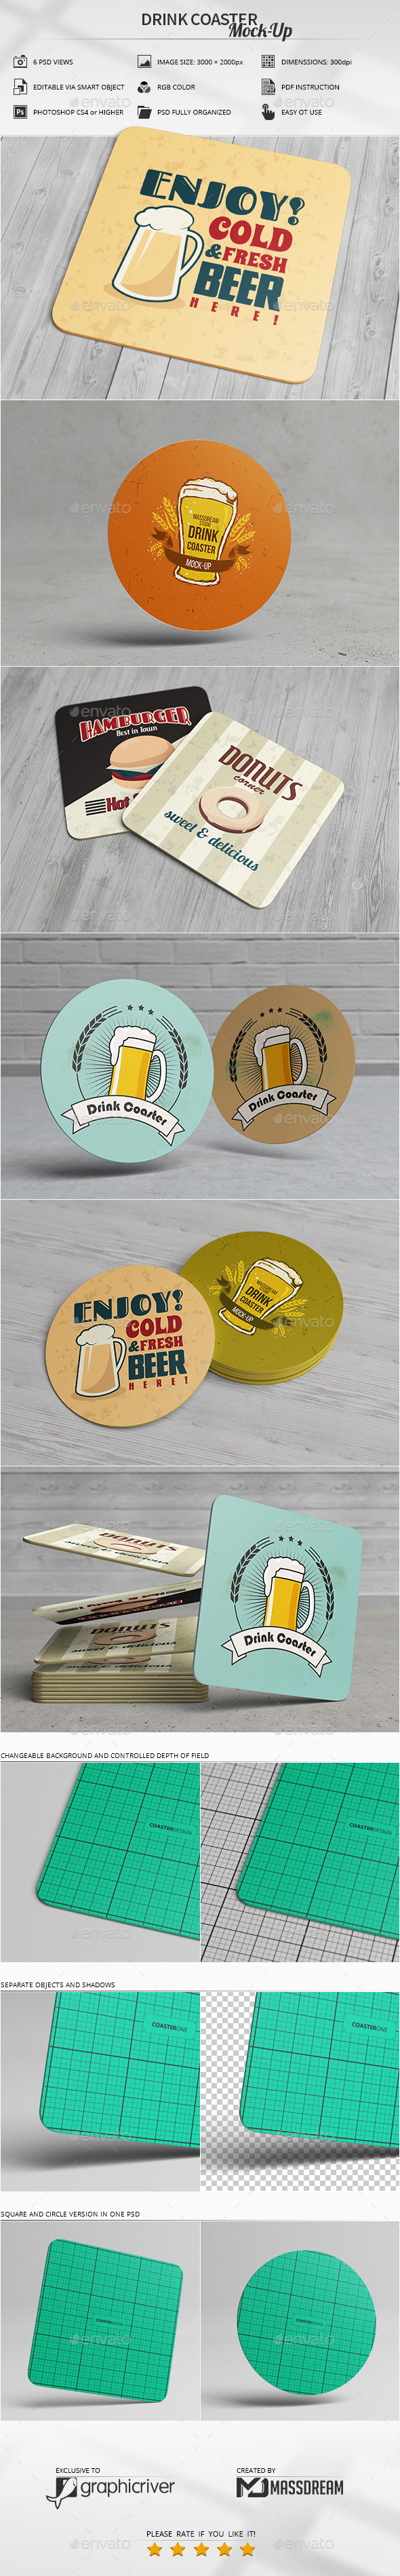 Drink Coaster Mock-Up - Product Mock-Ups Graphics